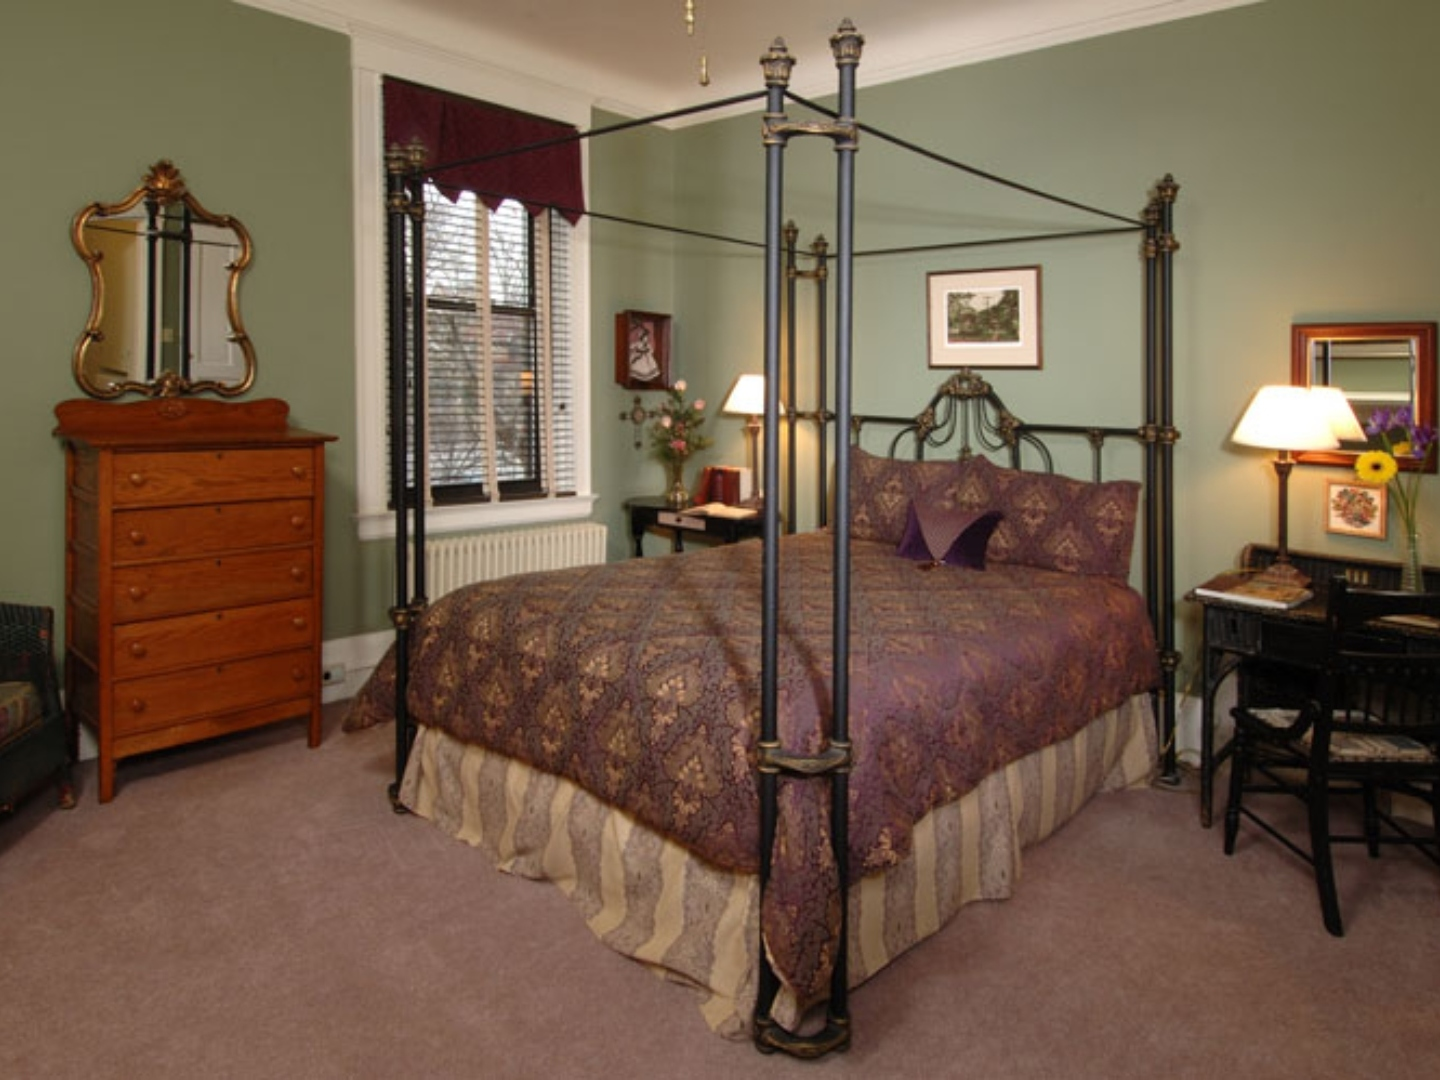 A bedroom with a bed and desk in a room at The Clifton House Bed and Breakfast.